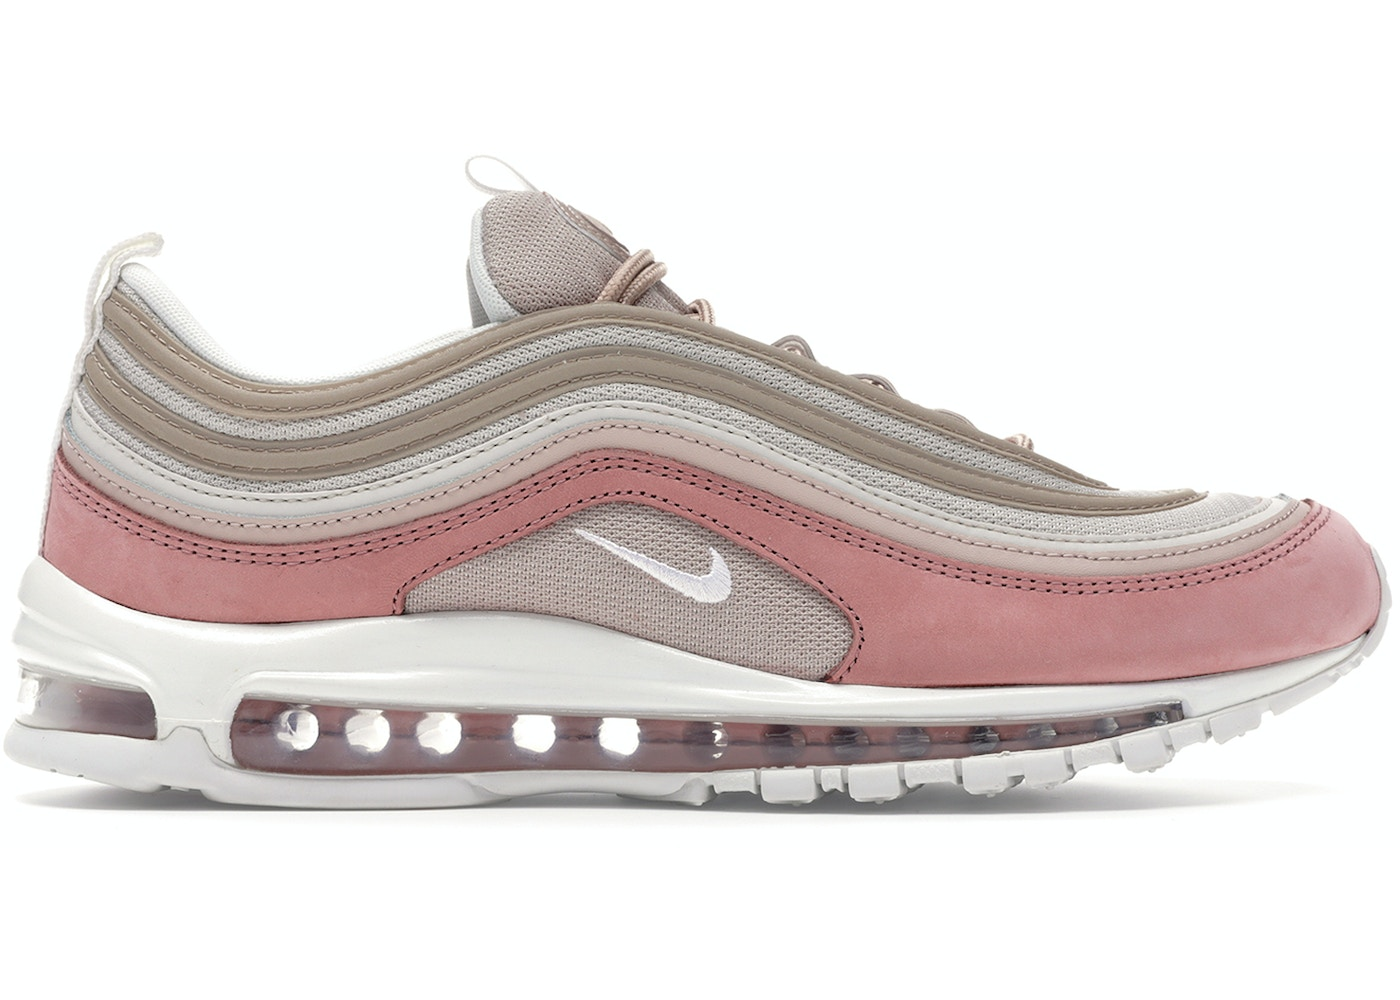 a82f65756059 Air Max 97 Particle Beige - 312834-200